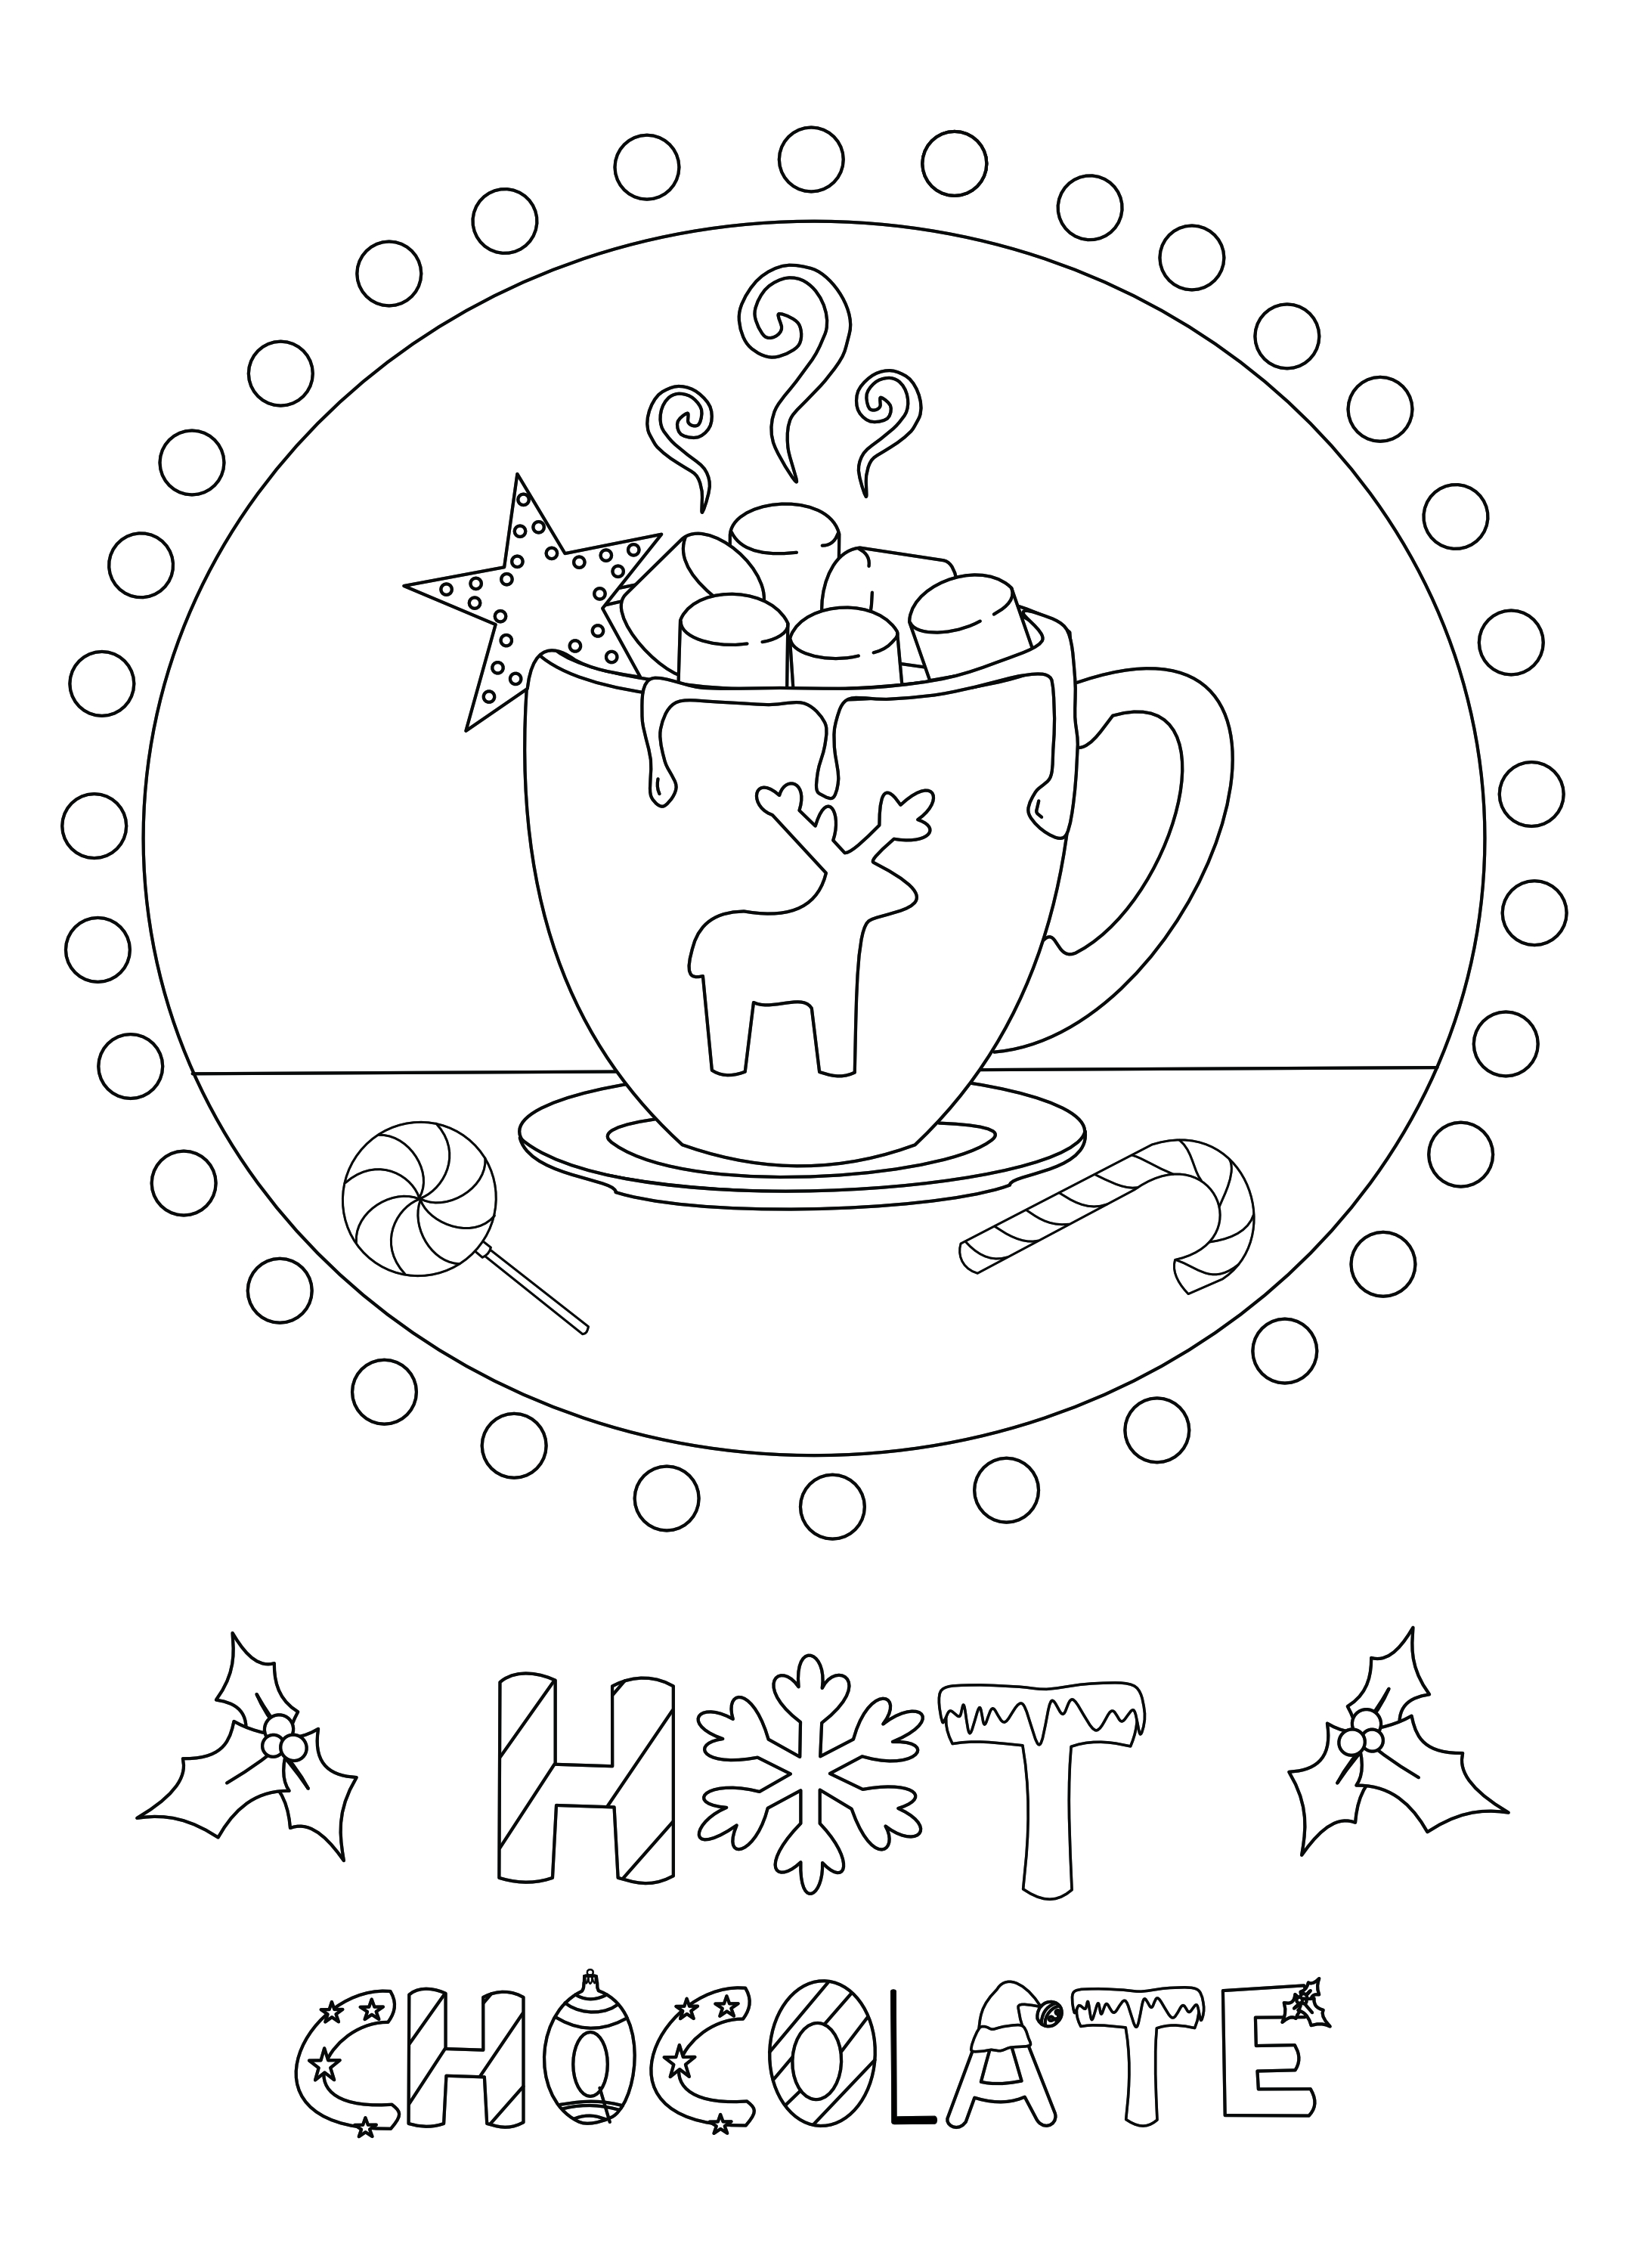 download the high resolution xtra hot chocolate reindeer here